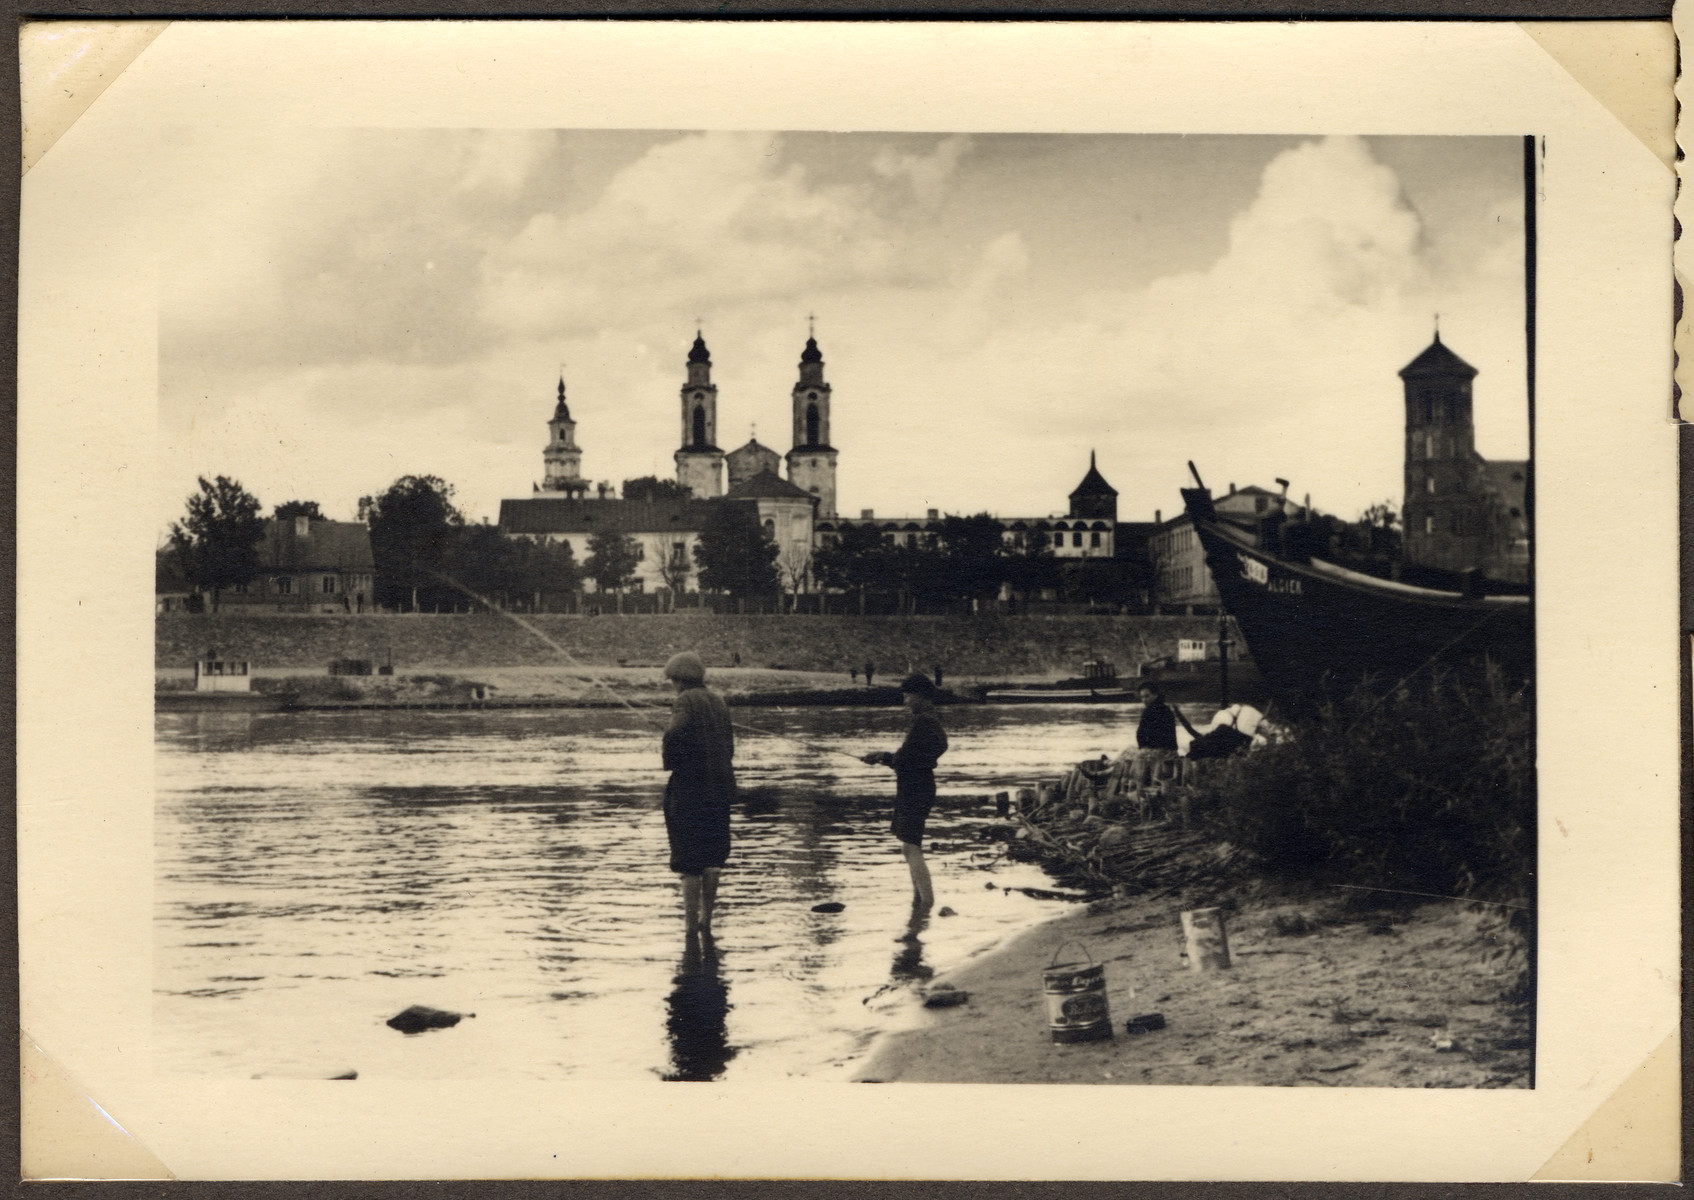 Two people stand on the banks of the river in Kaunas fishing.